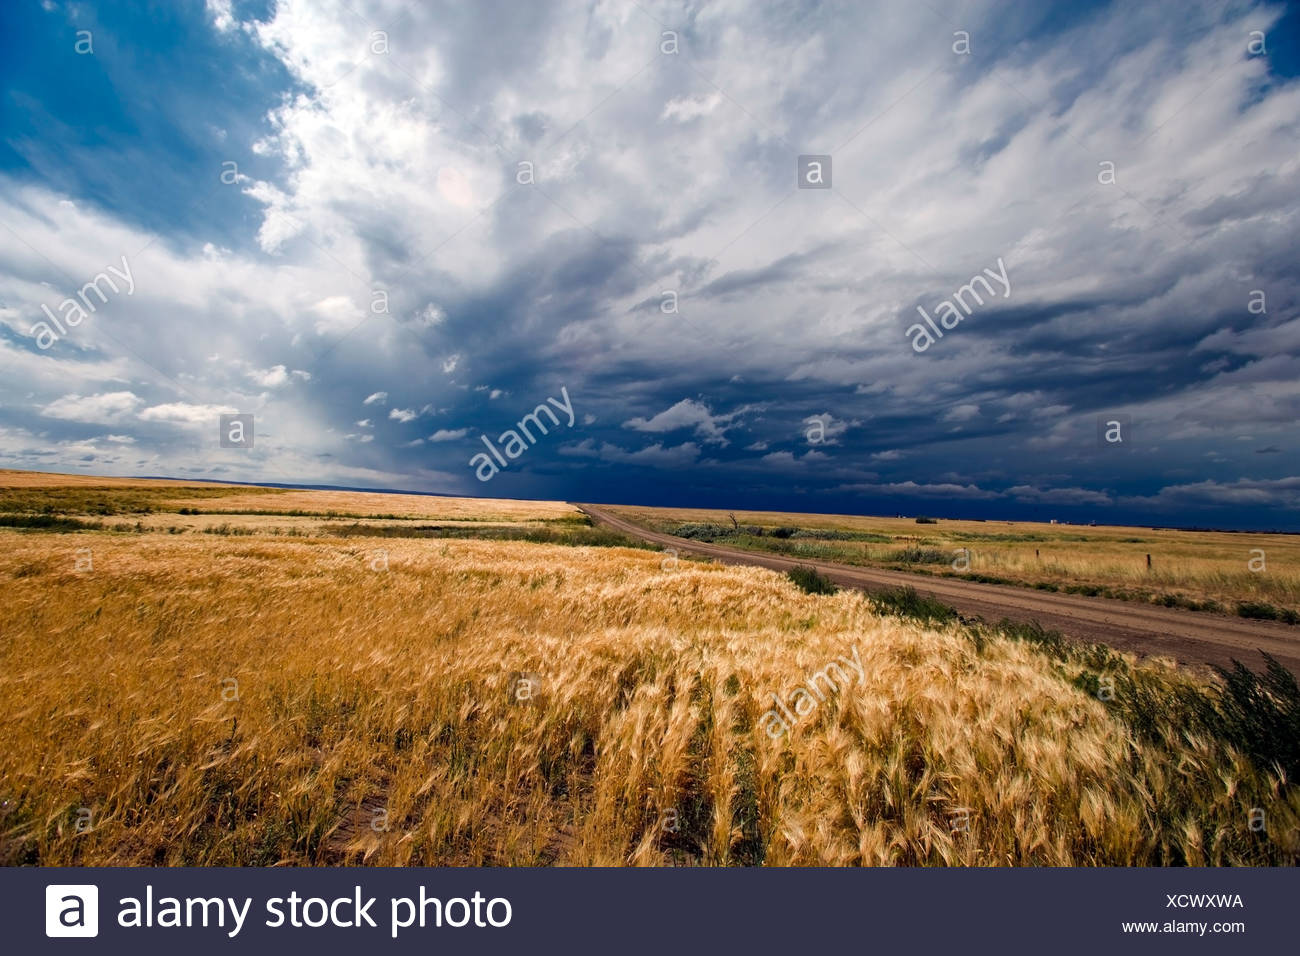 Thunder Storm, Crowfoot Ferry, Alberta, Canada, grain, agriculture, Cloud, weather - Stock Image